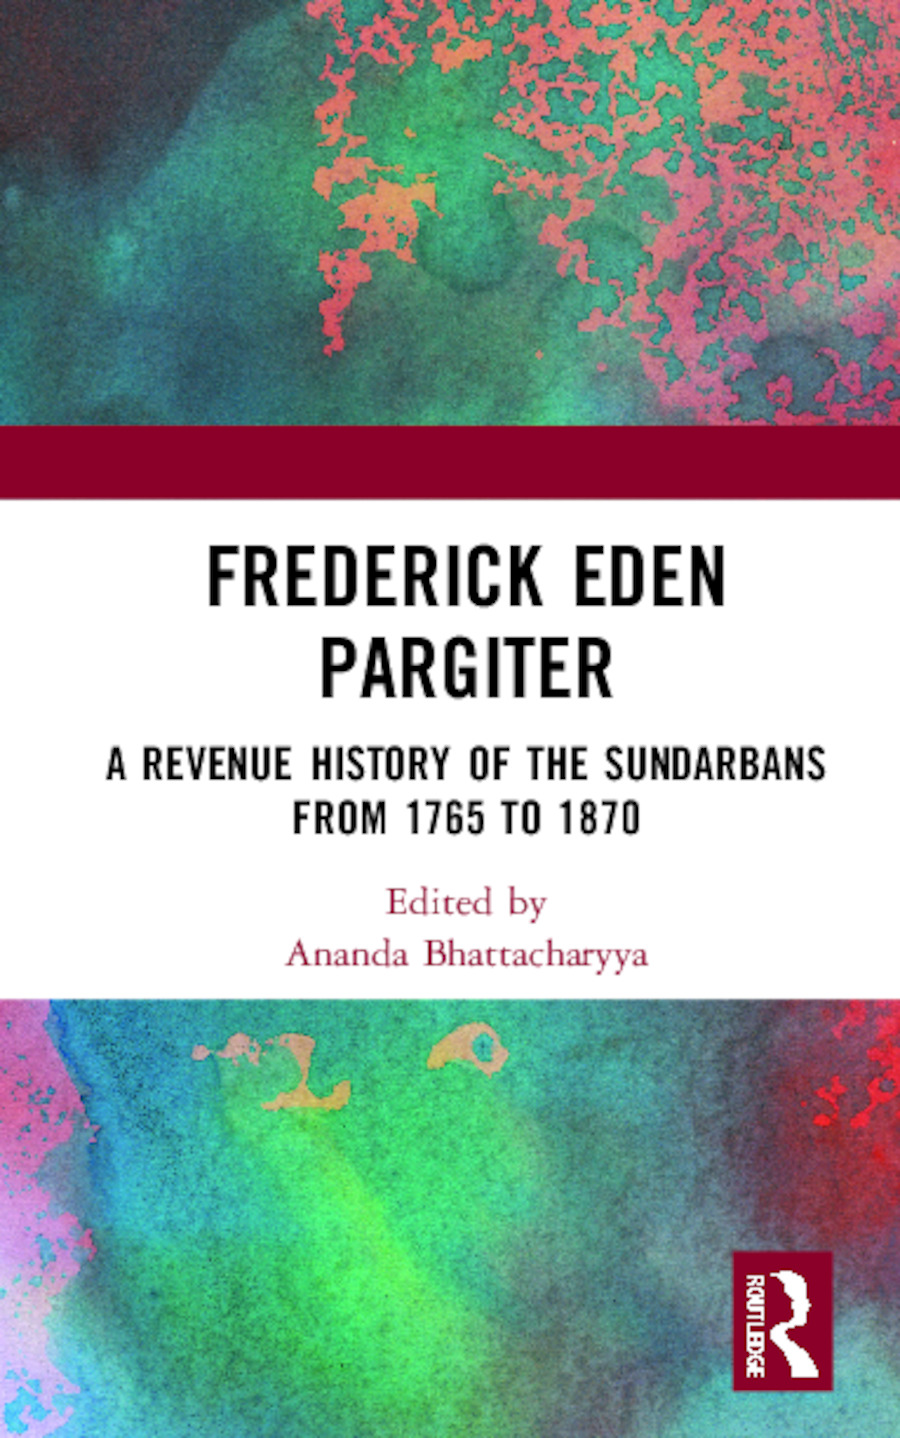 Frederick Eden Pargiter: A Revenue History of the Sundarbans from 1765 to 1870 book cover